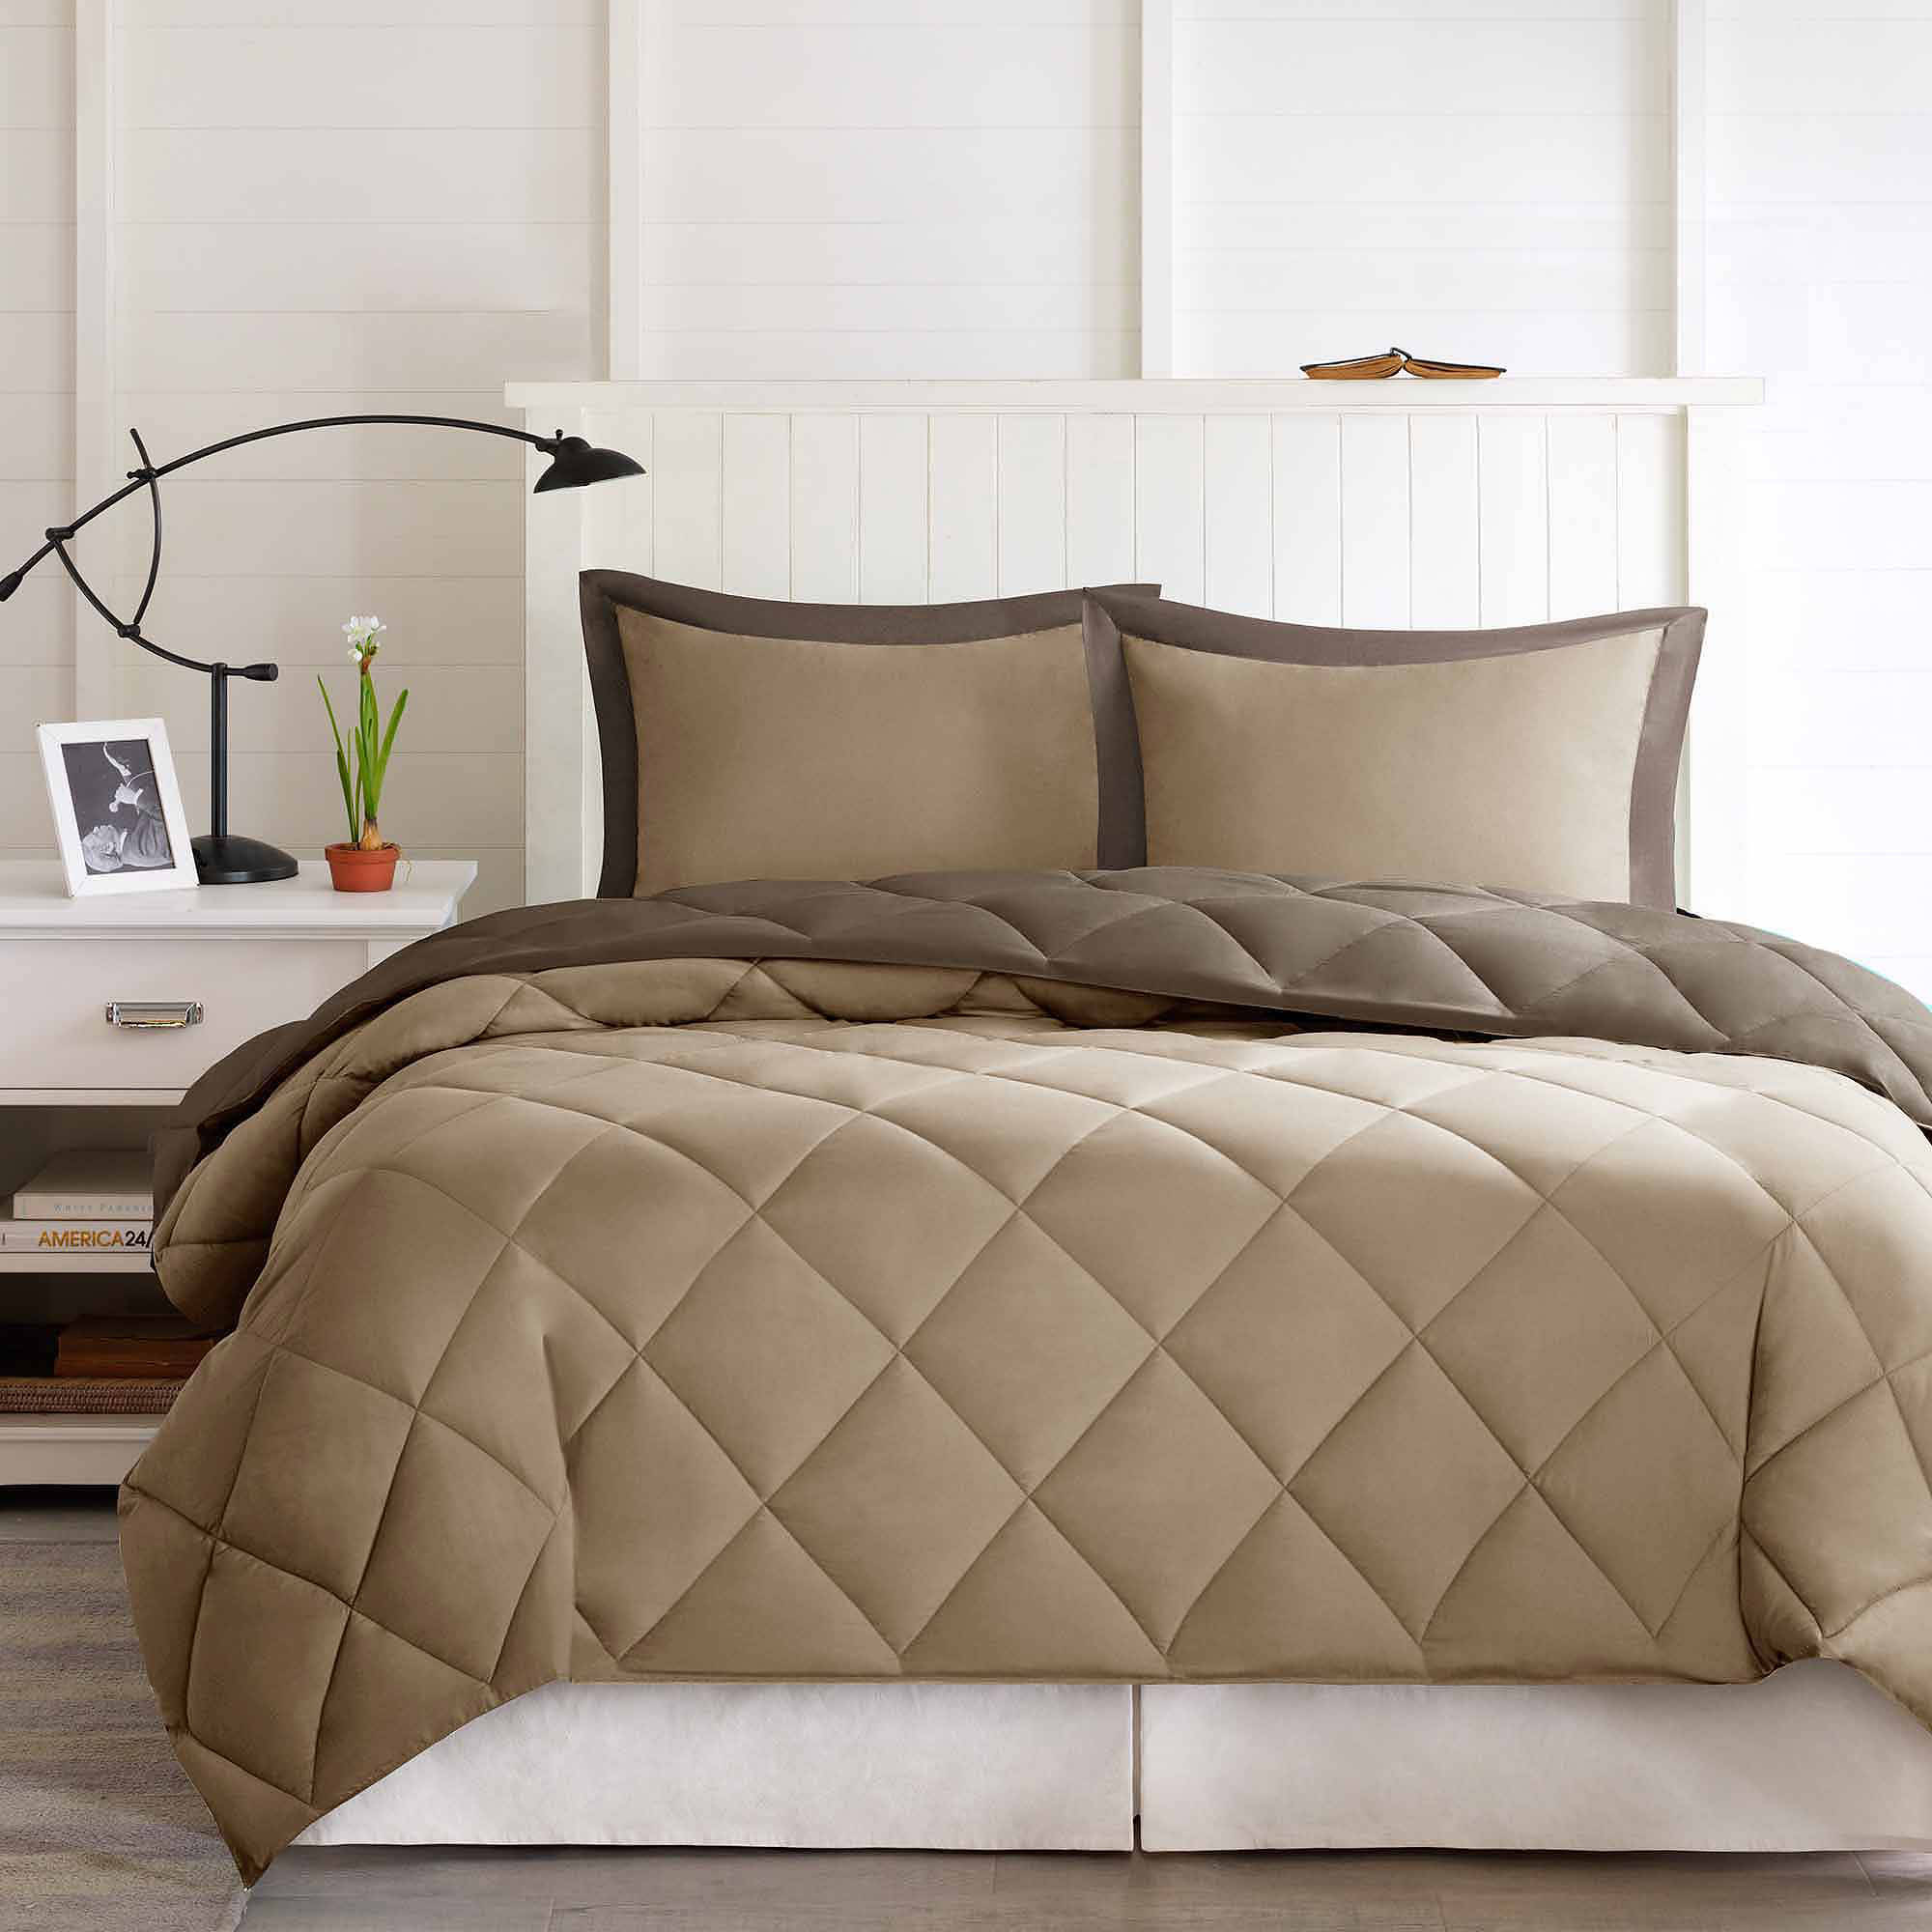 Comfort Classics Windsor Microfiber Down Alternative Comforter with 3M Scotchgard